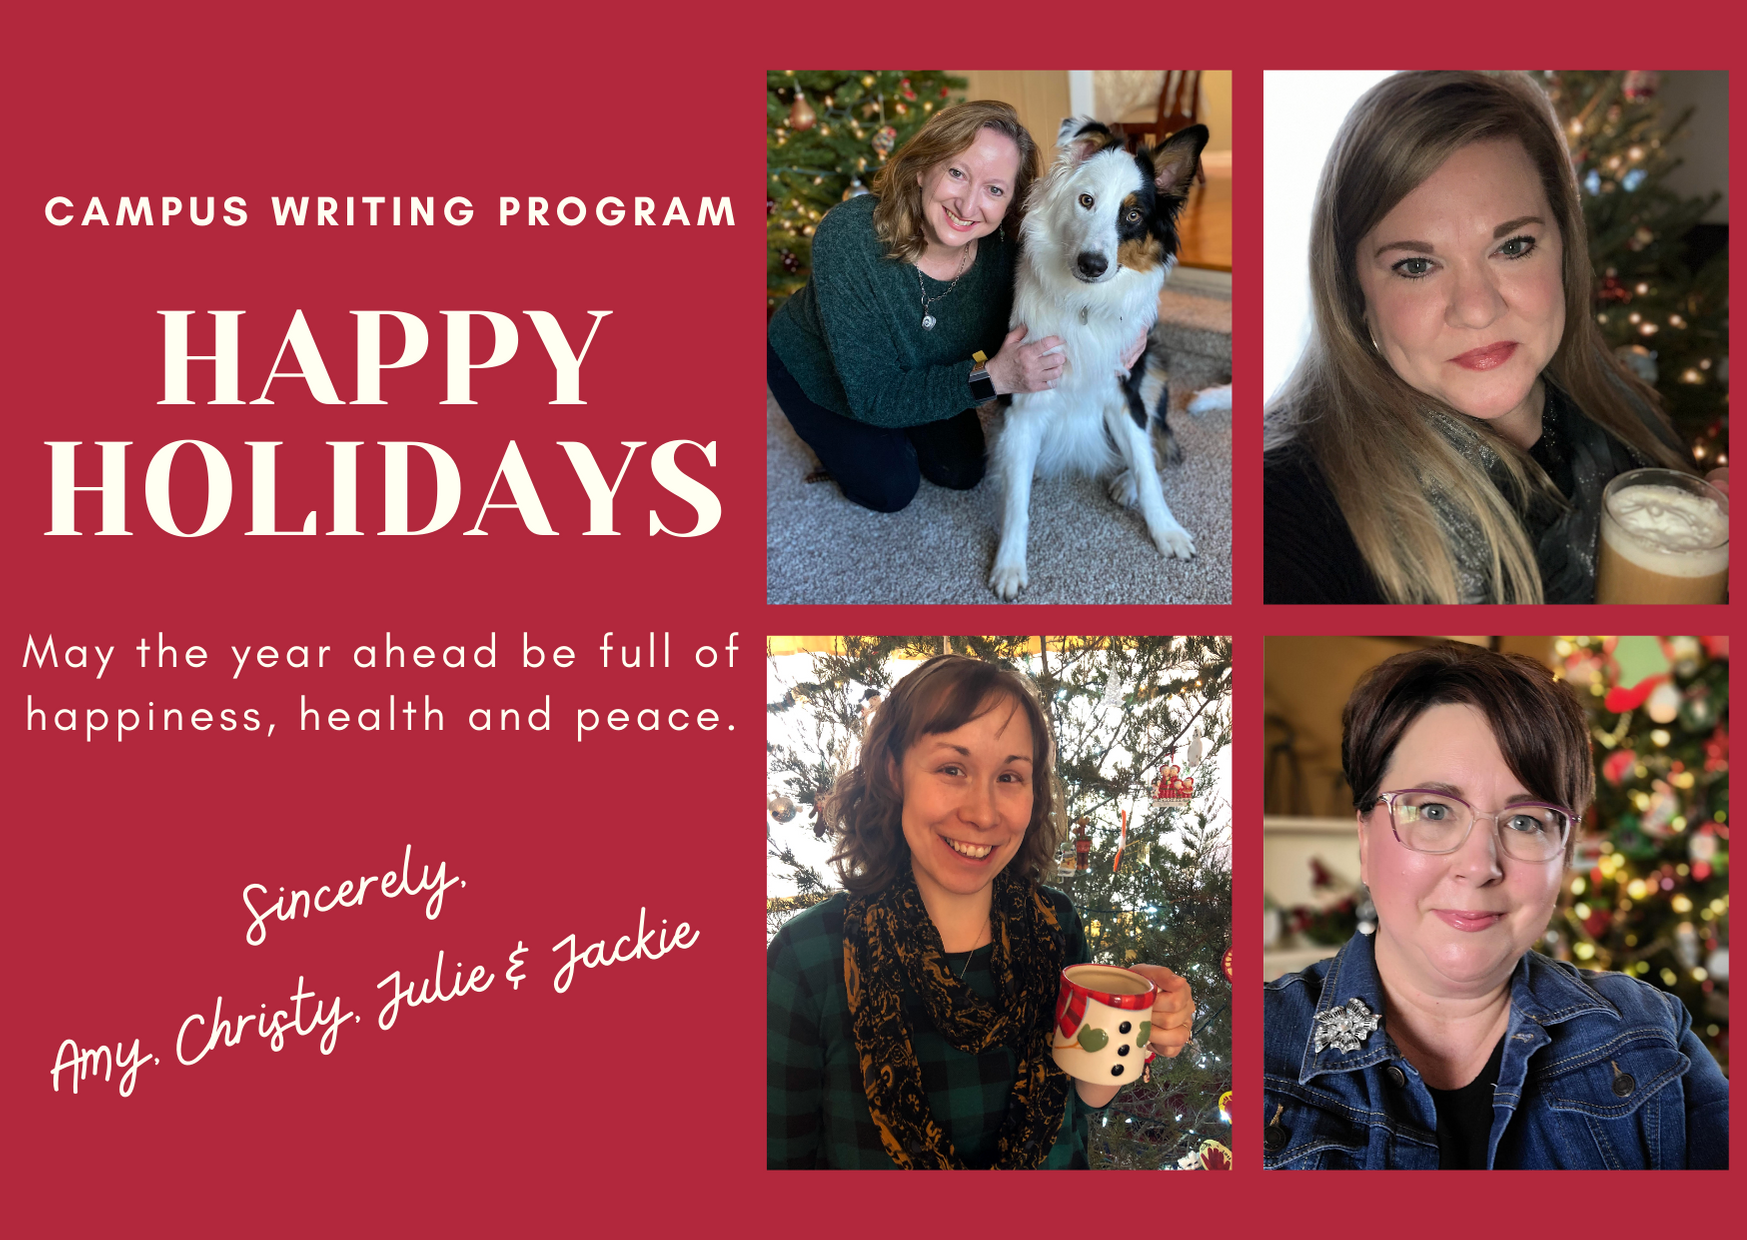 CWP Holiday Card